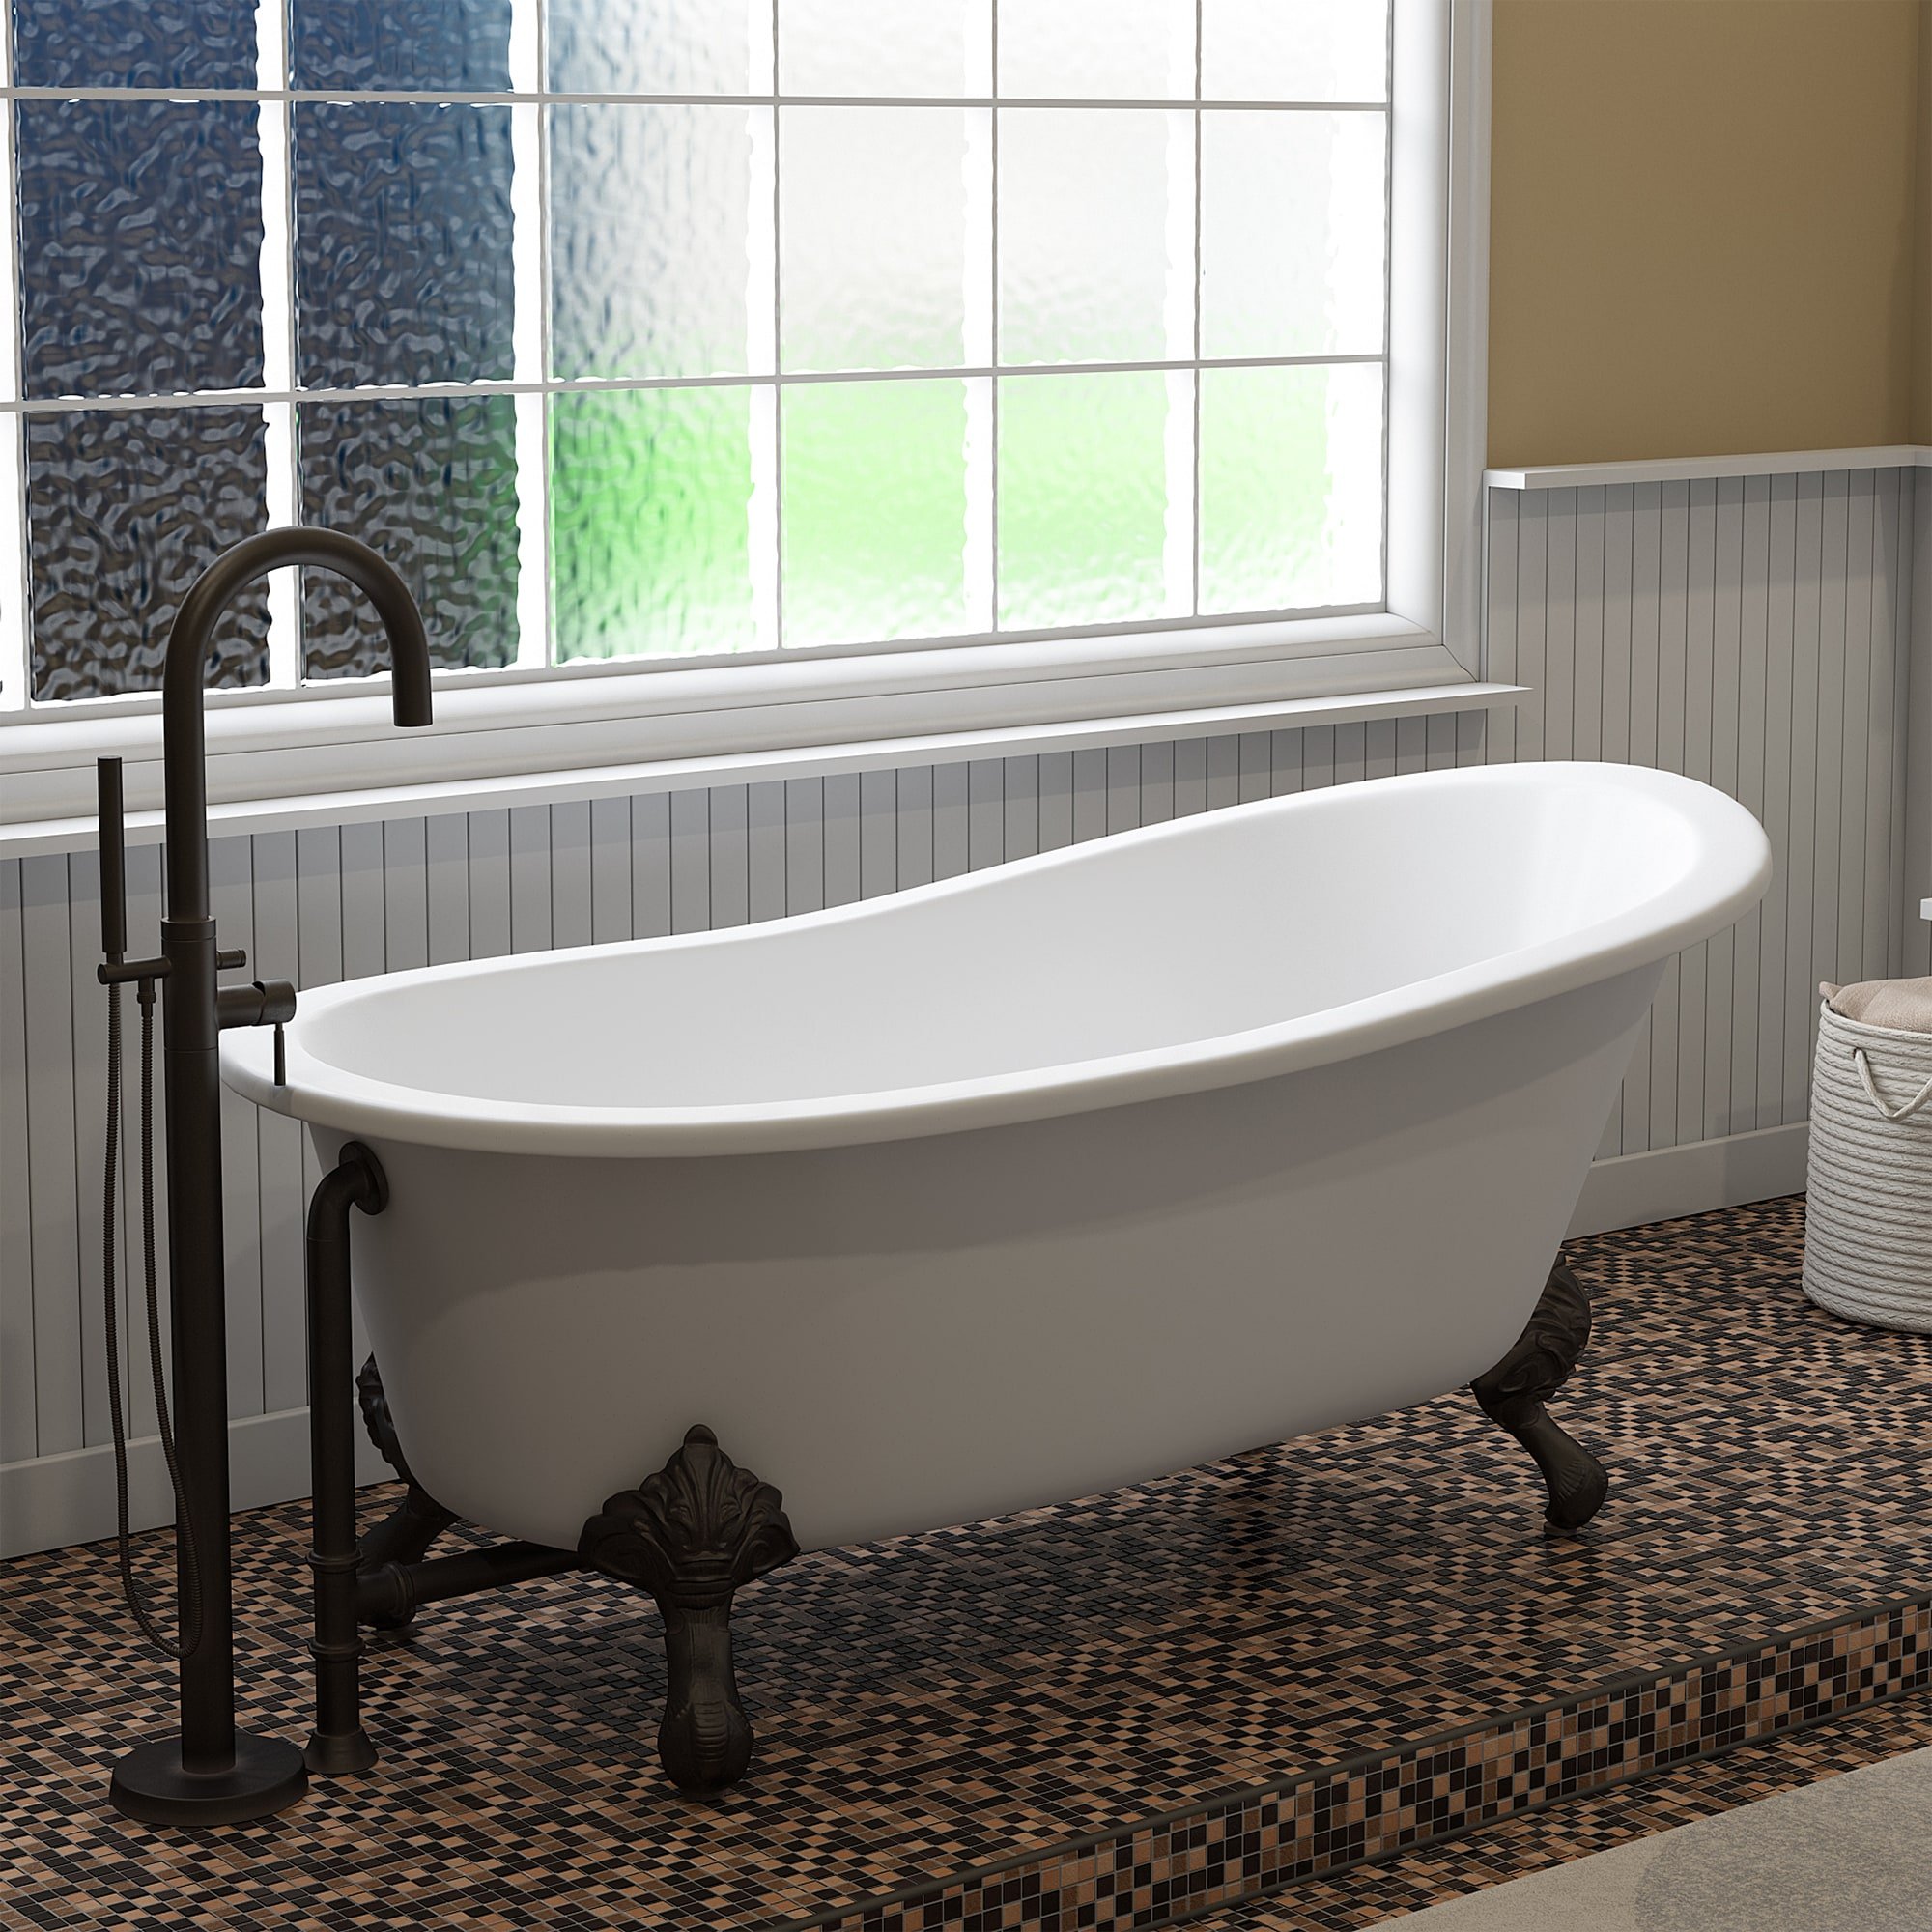 Cast Iron Slipper Clawfoot Tub Complete Freestanding Plumbing Package